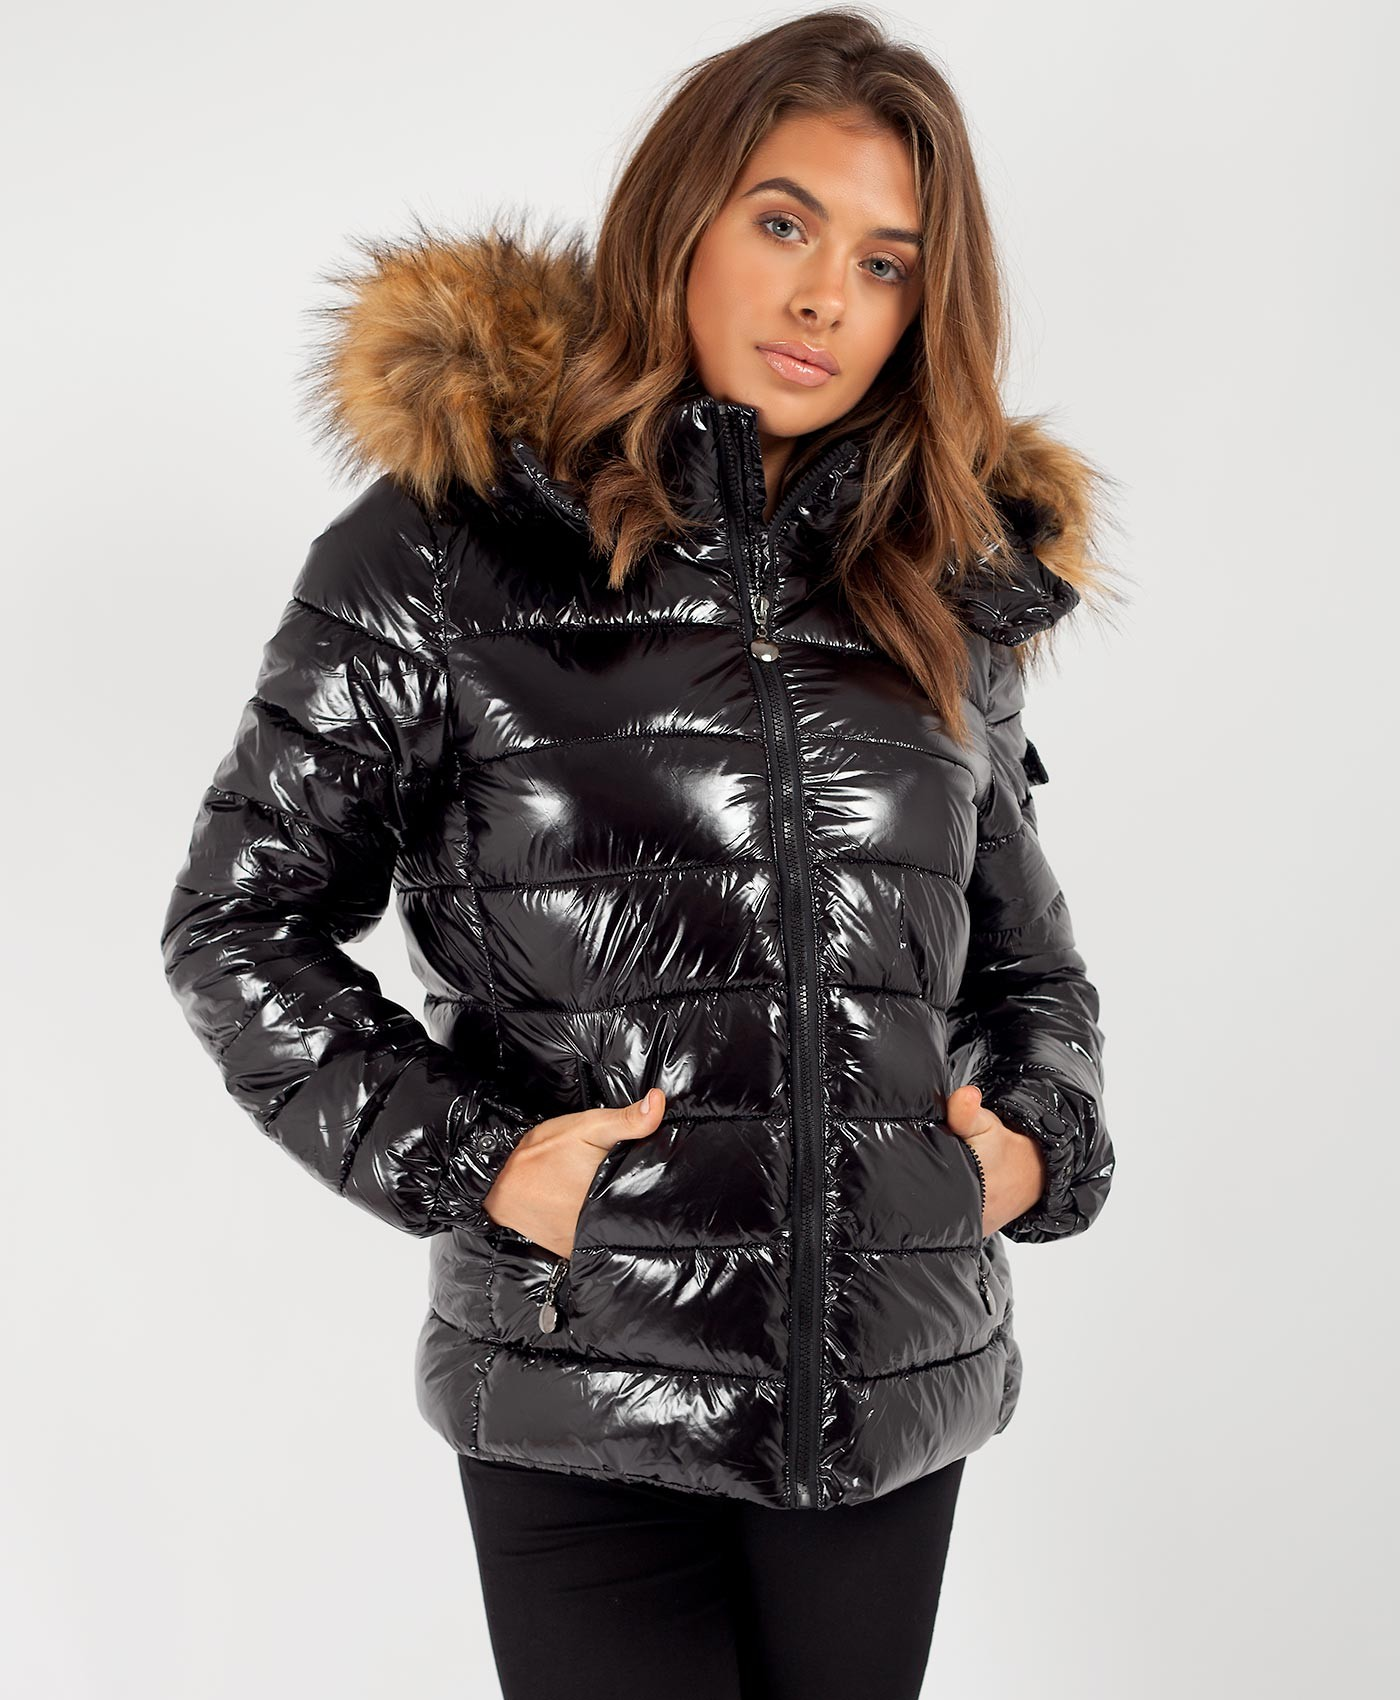 Black-Wet-Look-Shiny-Chunky-Faux-Fur-Hood-Jacket-2